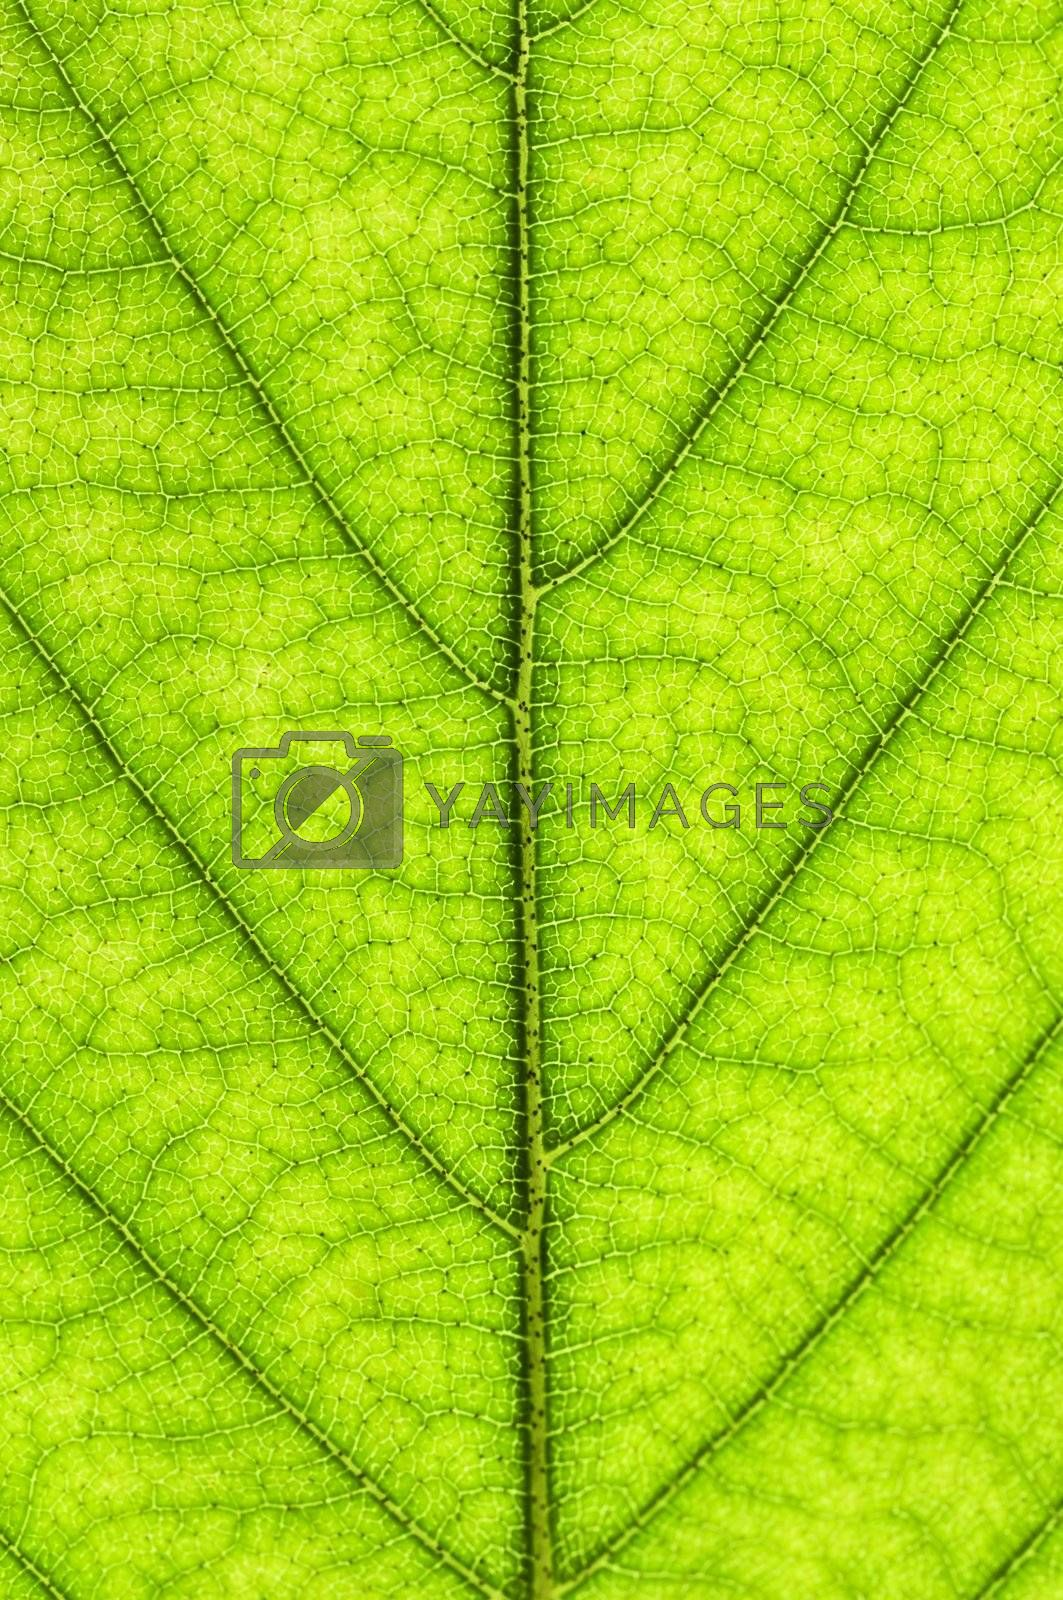 Green leaf texture by elenathewise